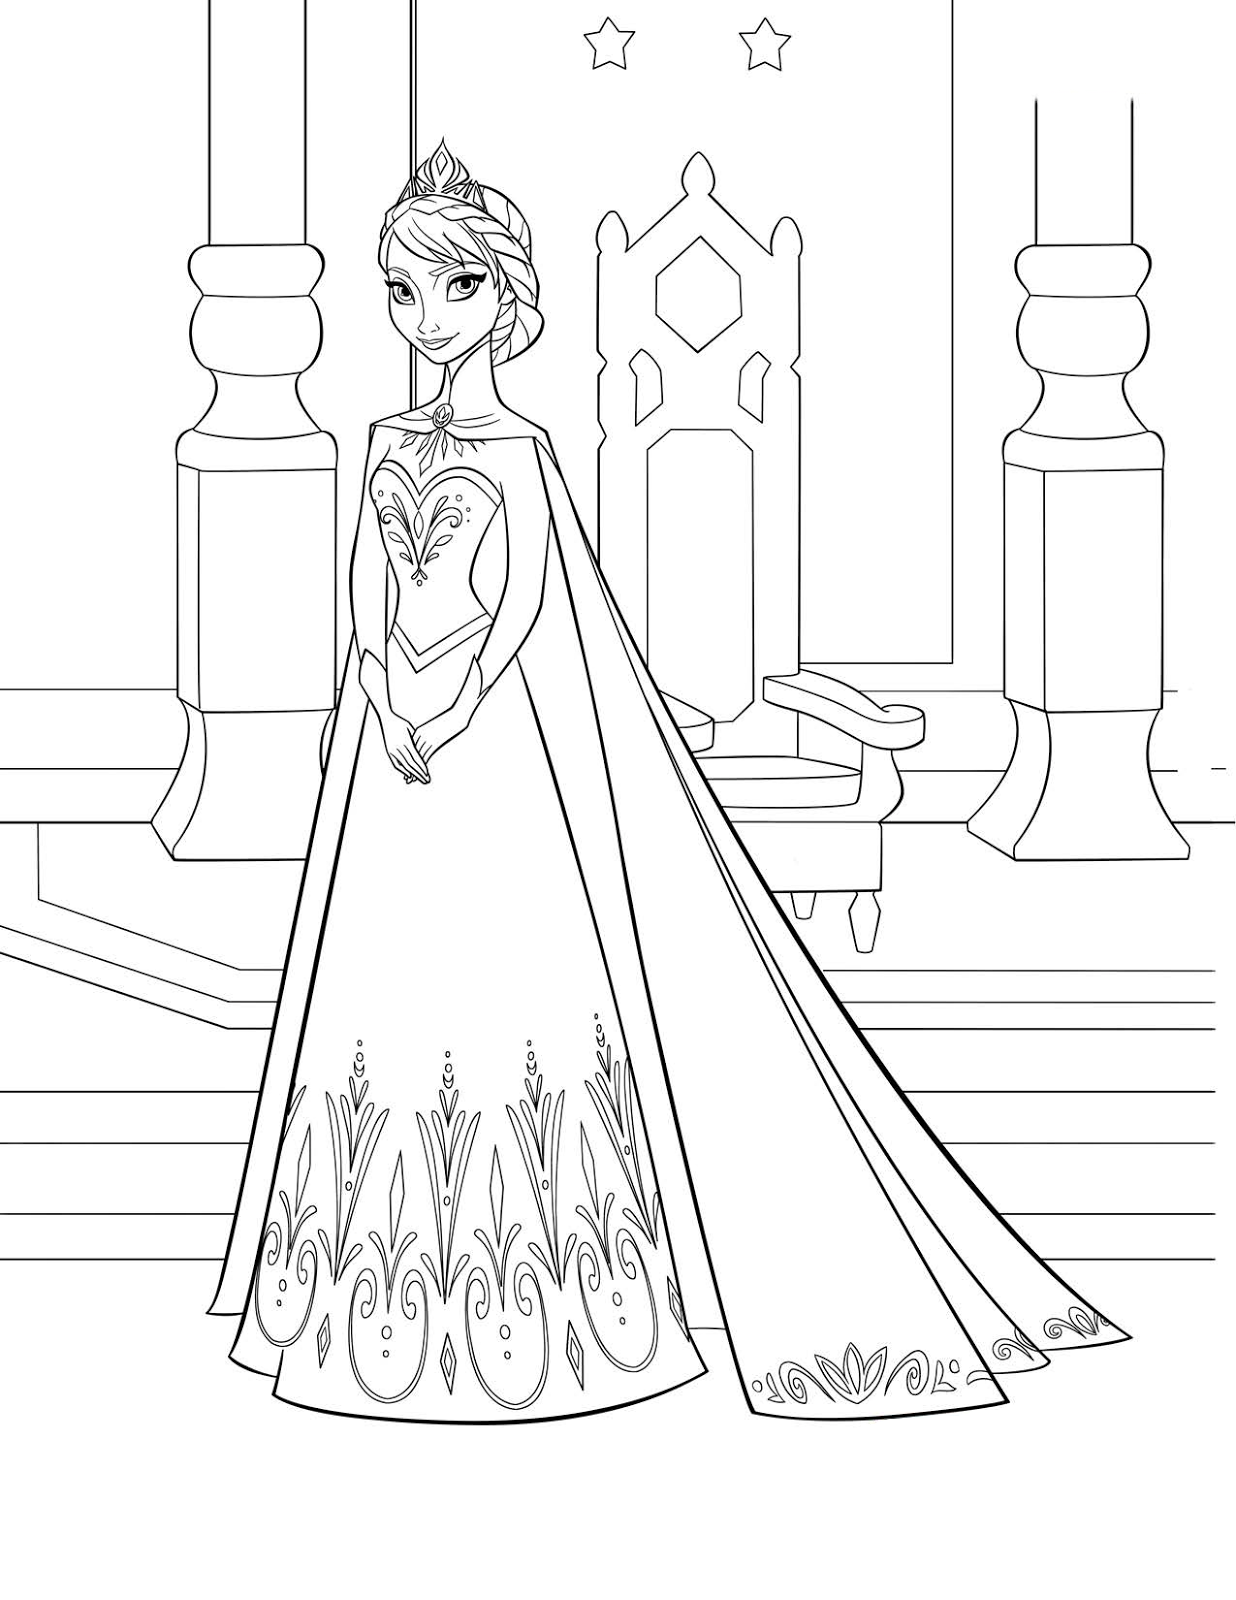 Coloring Pages: Disneys FROZEN coloring pages